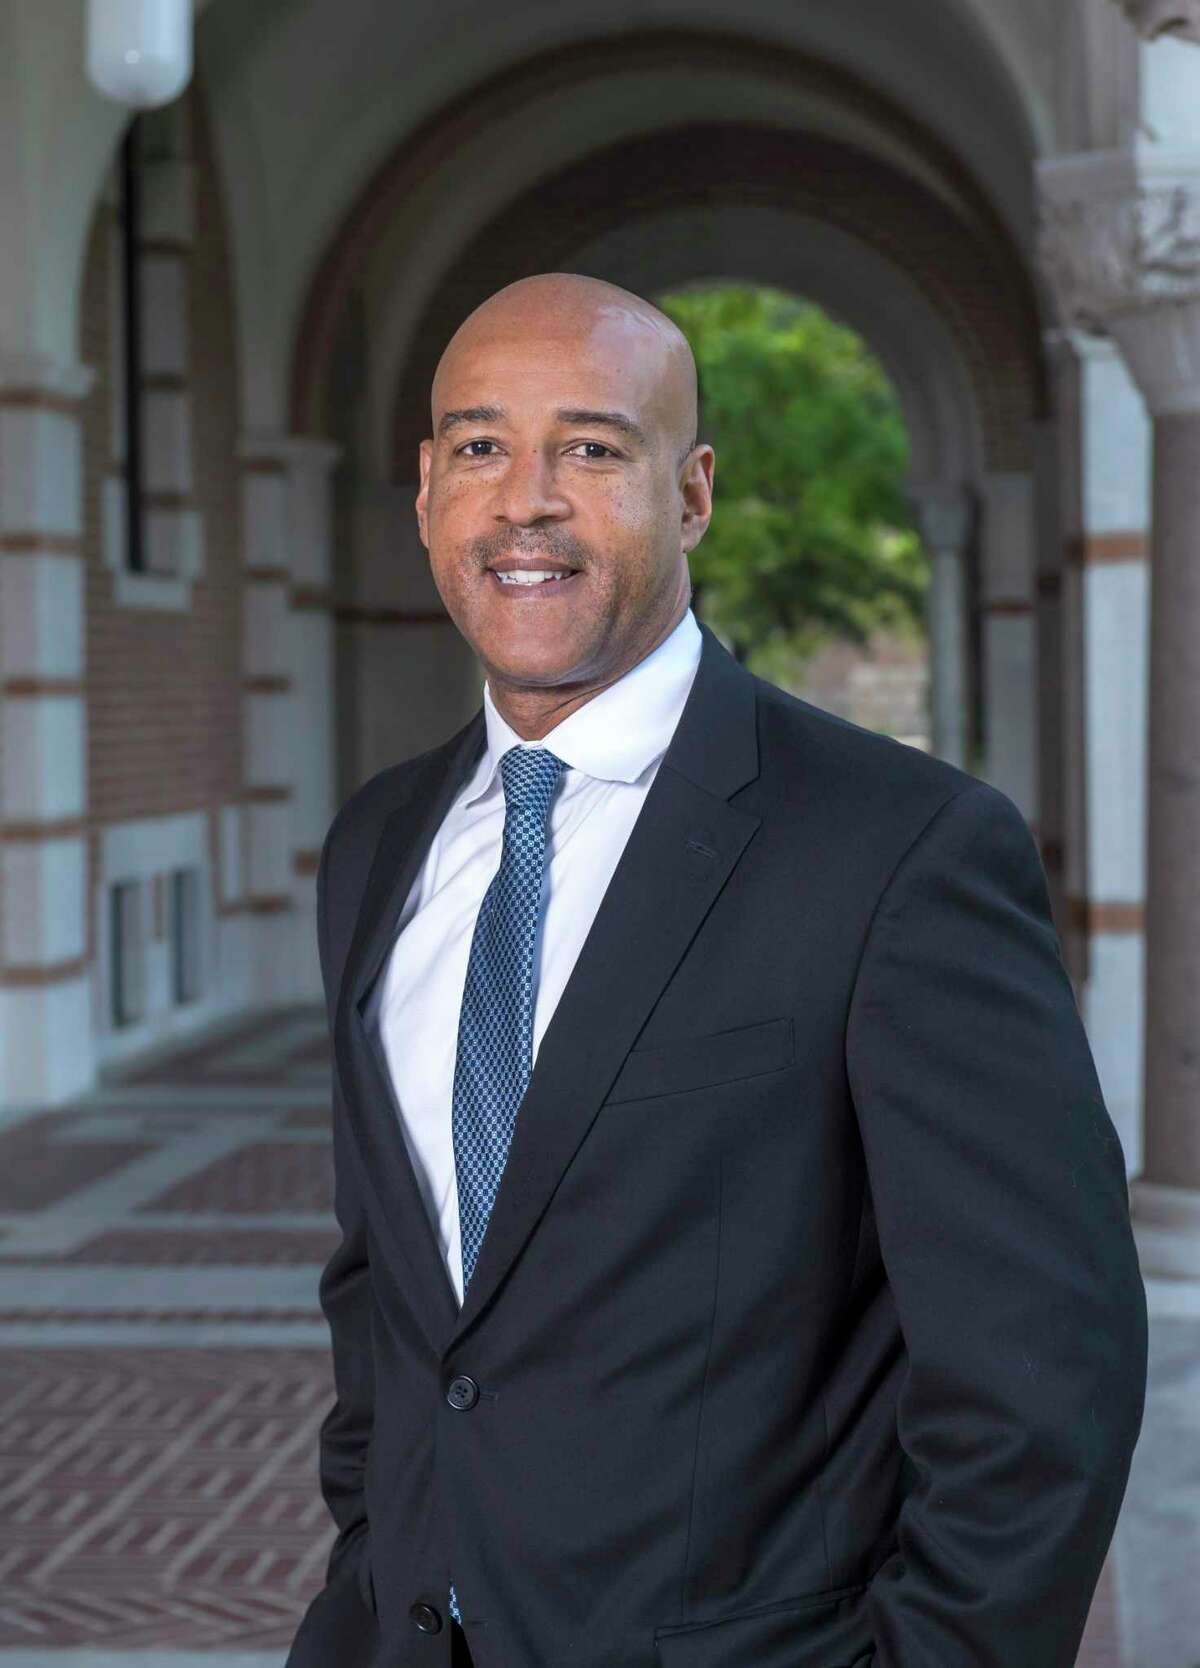 Rice University has named Reginald DesRoches, the dean of the college's School of Engineering, as its new provost, according to a university release.